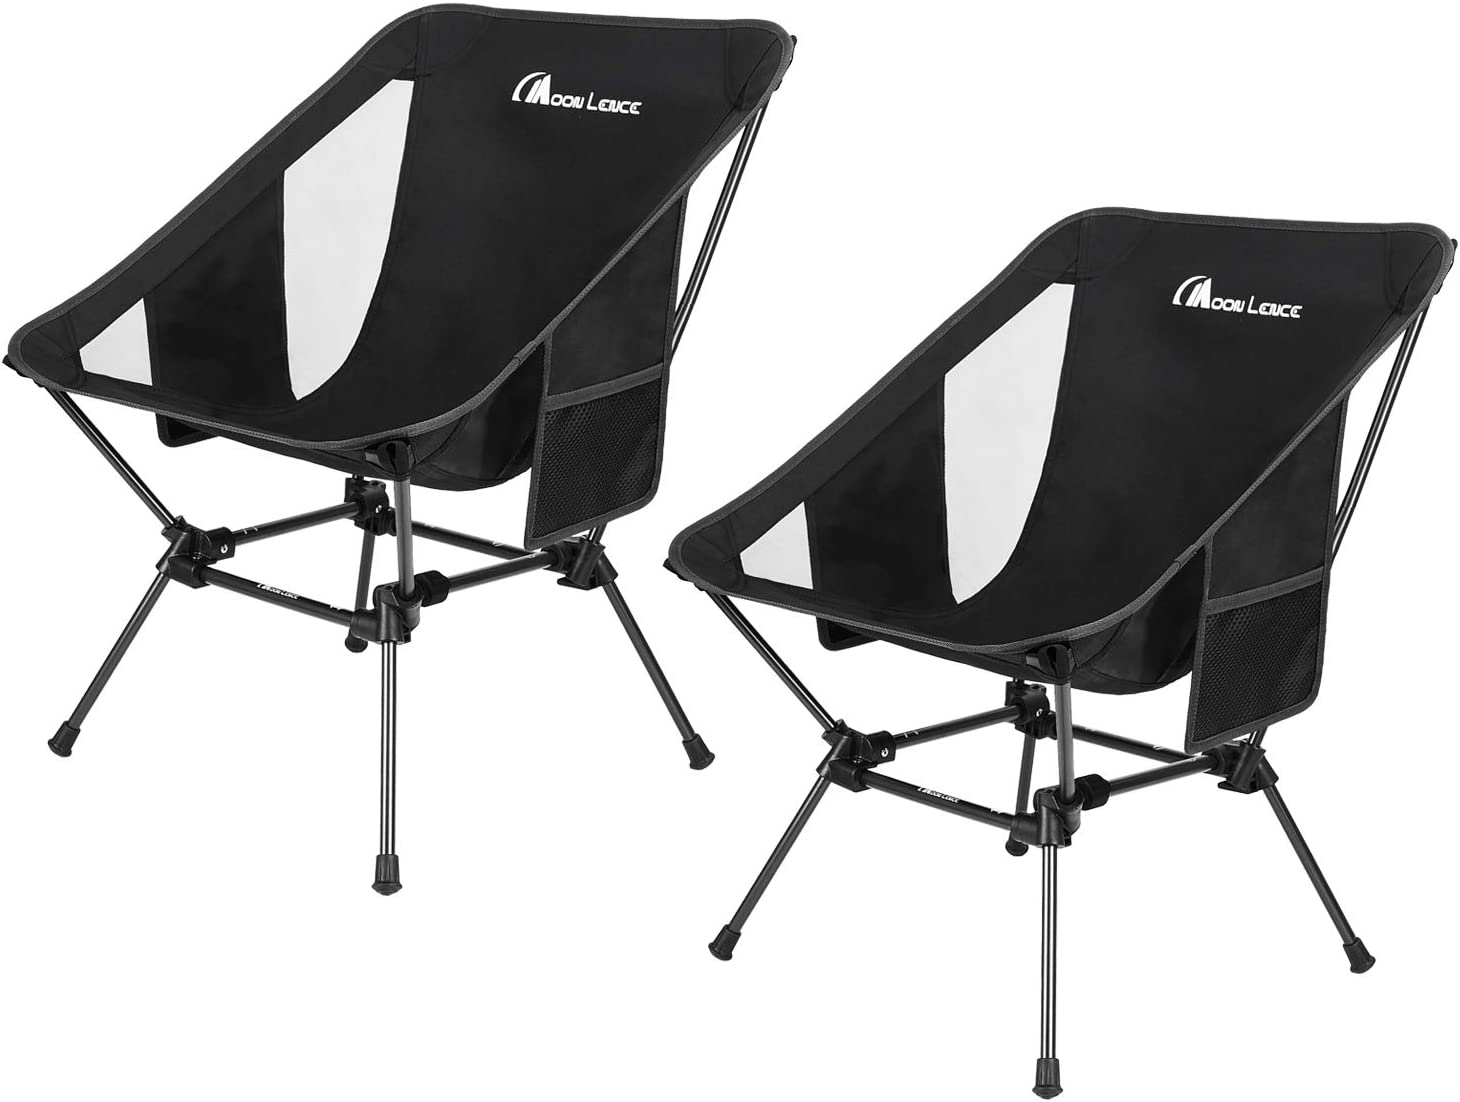 MOON LENCE Backpacking free shipping Chair Outdoor Camping Compact Milwaukee Mall Porta